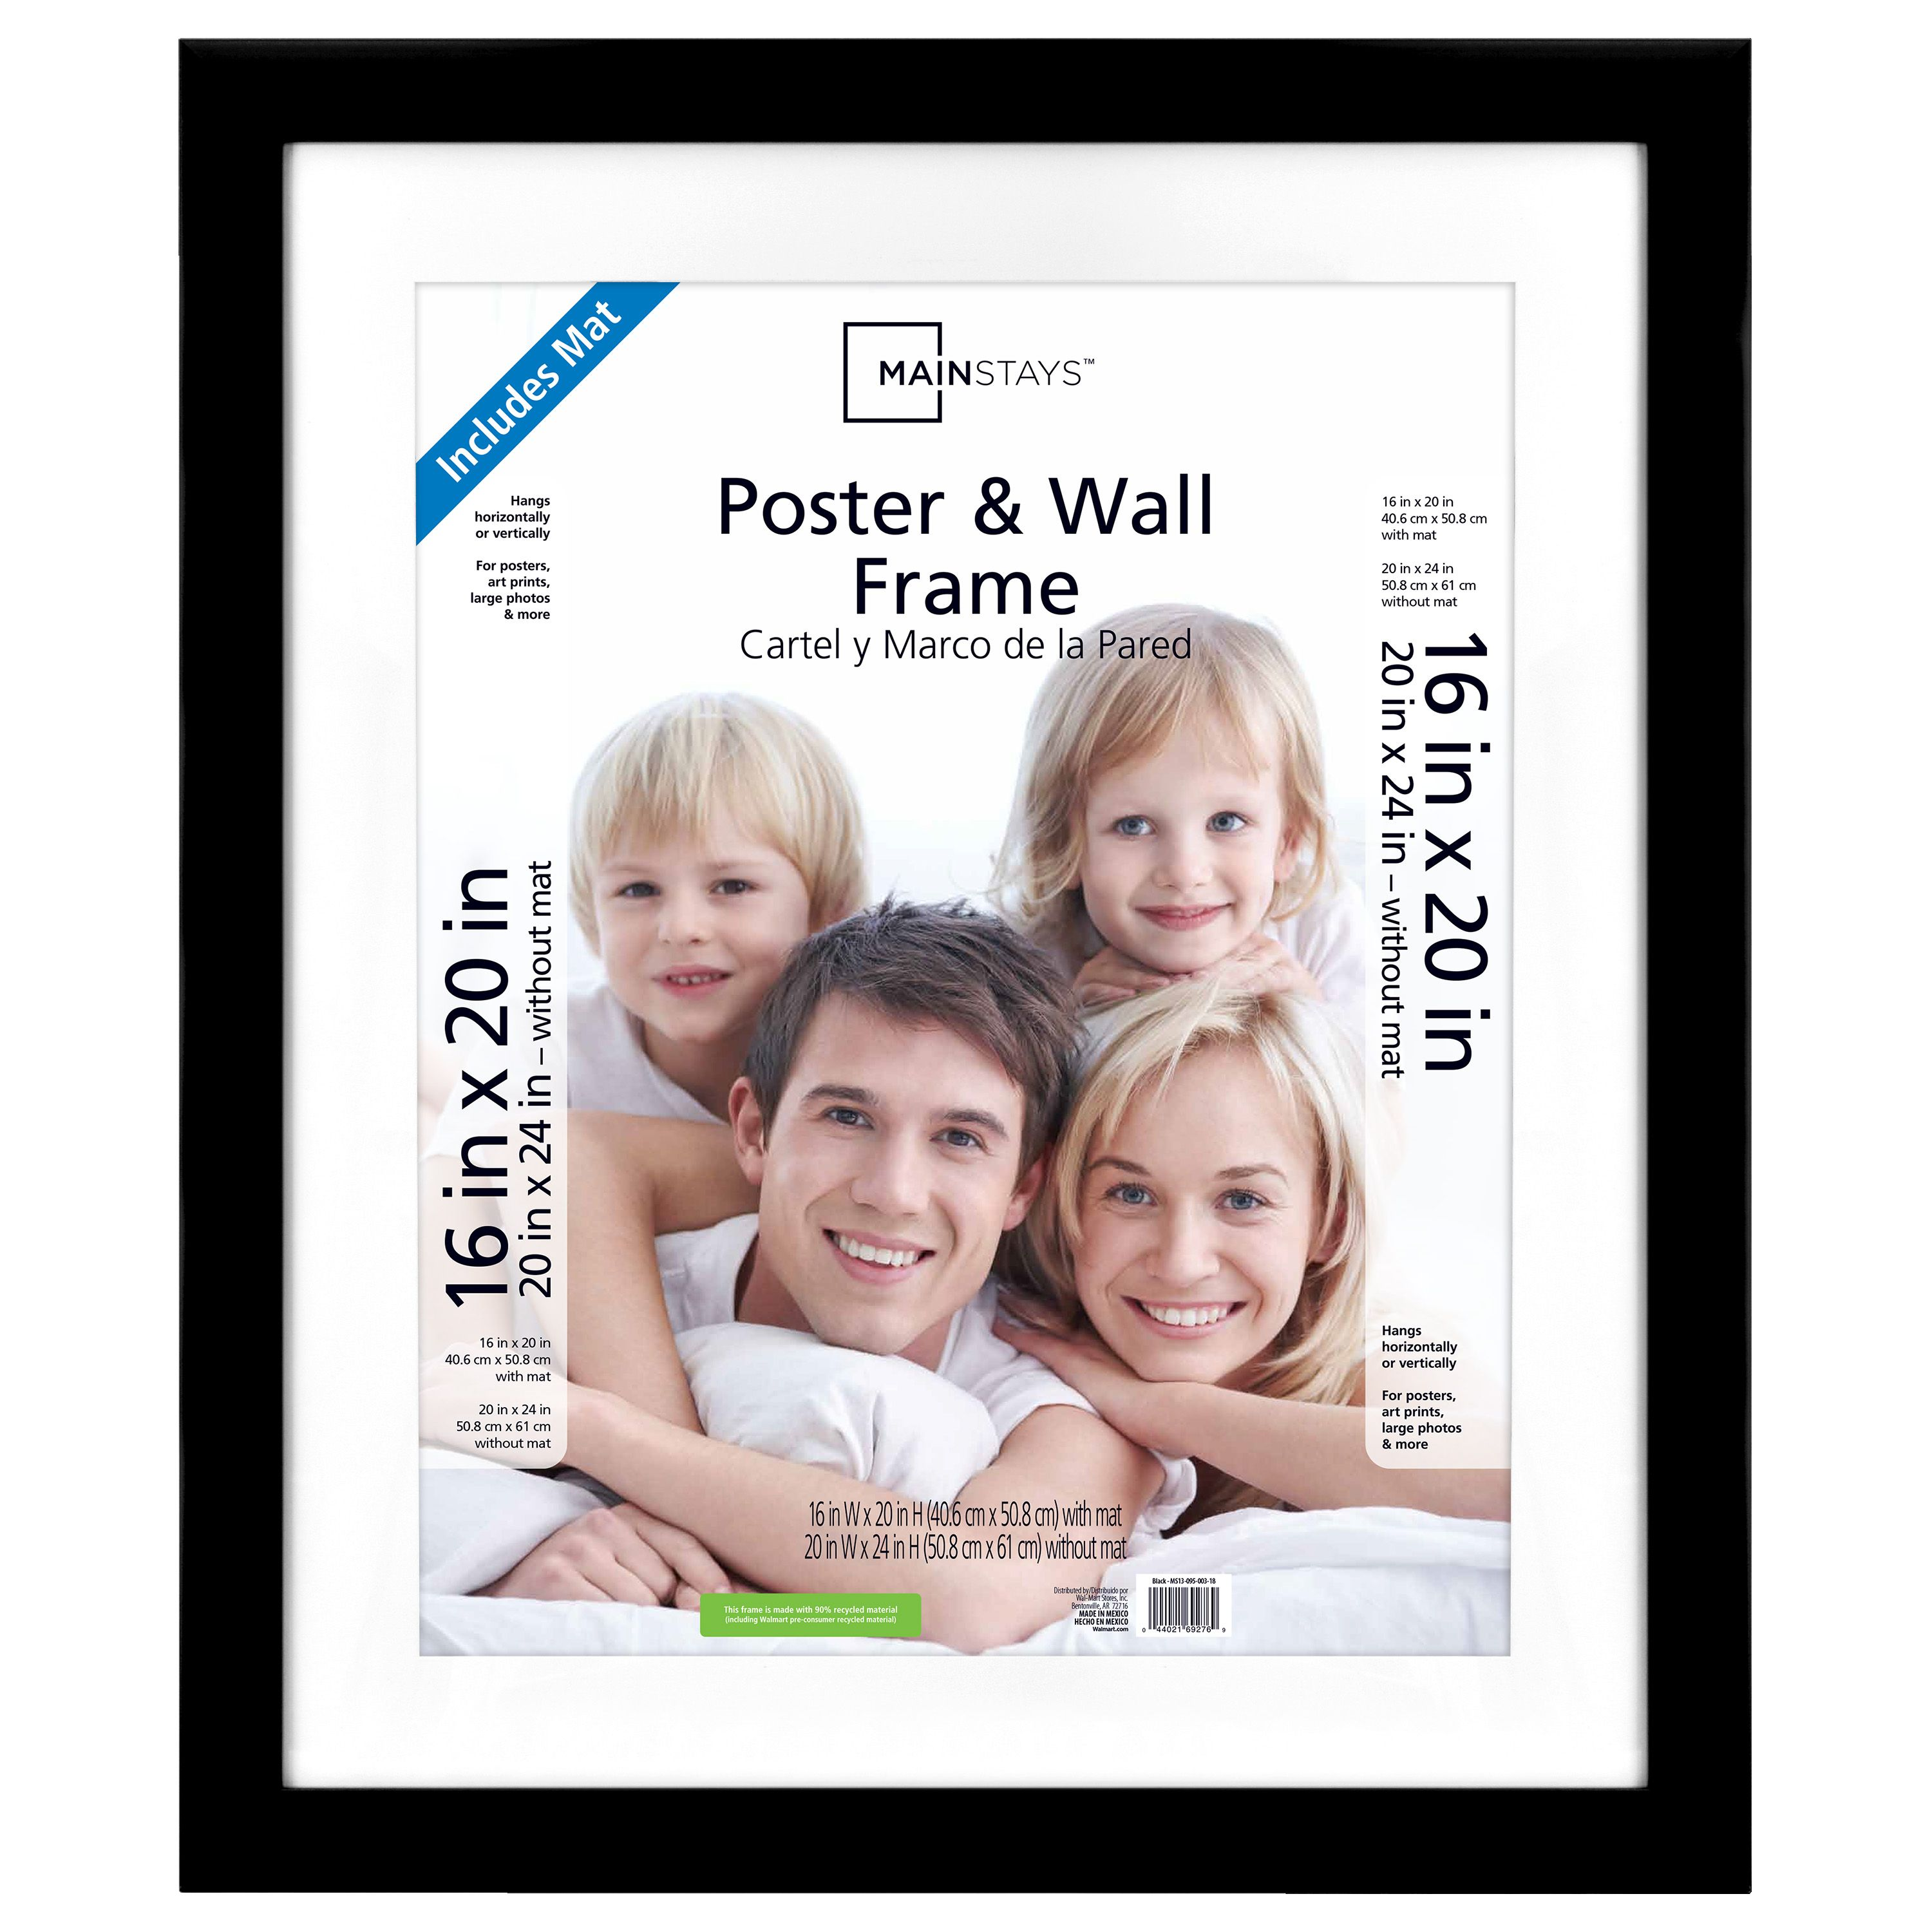 Mainstays 20 X 24 Matted To 16 X 20 Wide Black Poster And Picture Frame Walmart Com Frame Picture Frames Frames On Wall